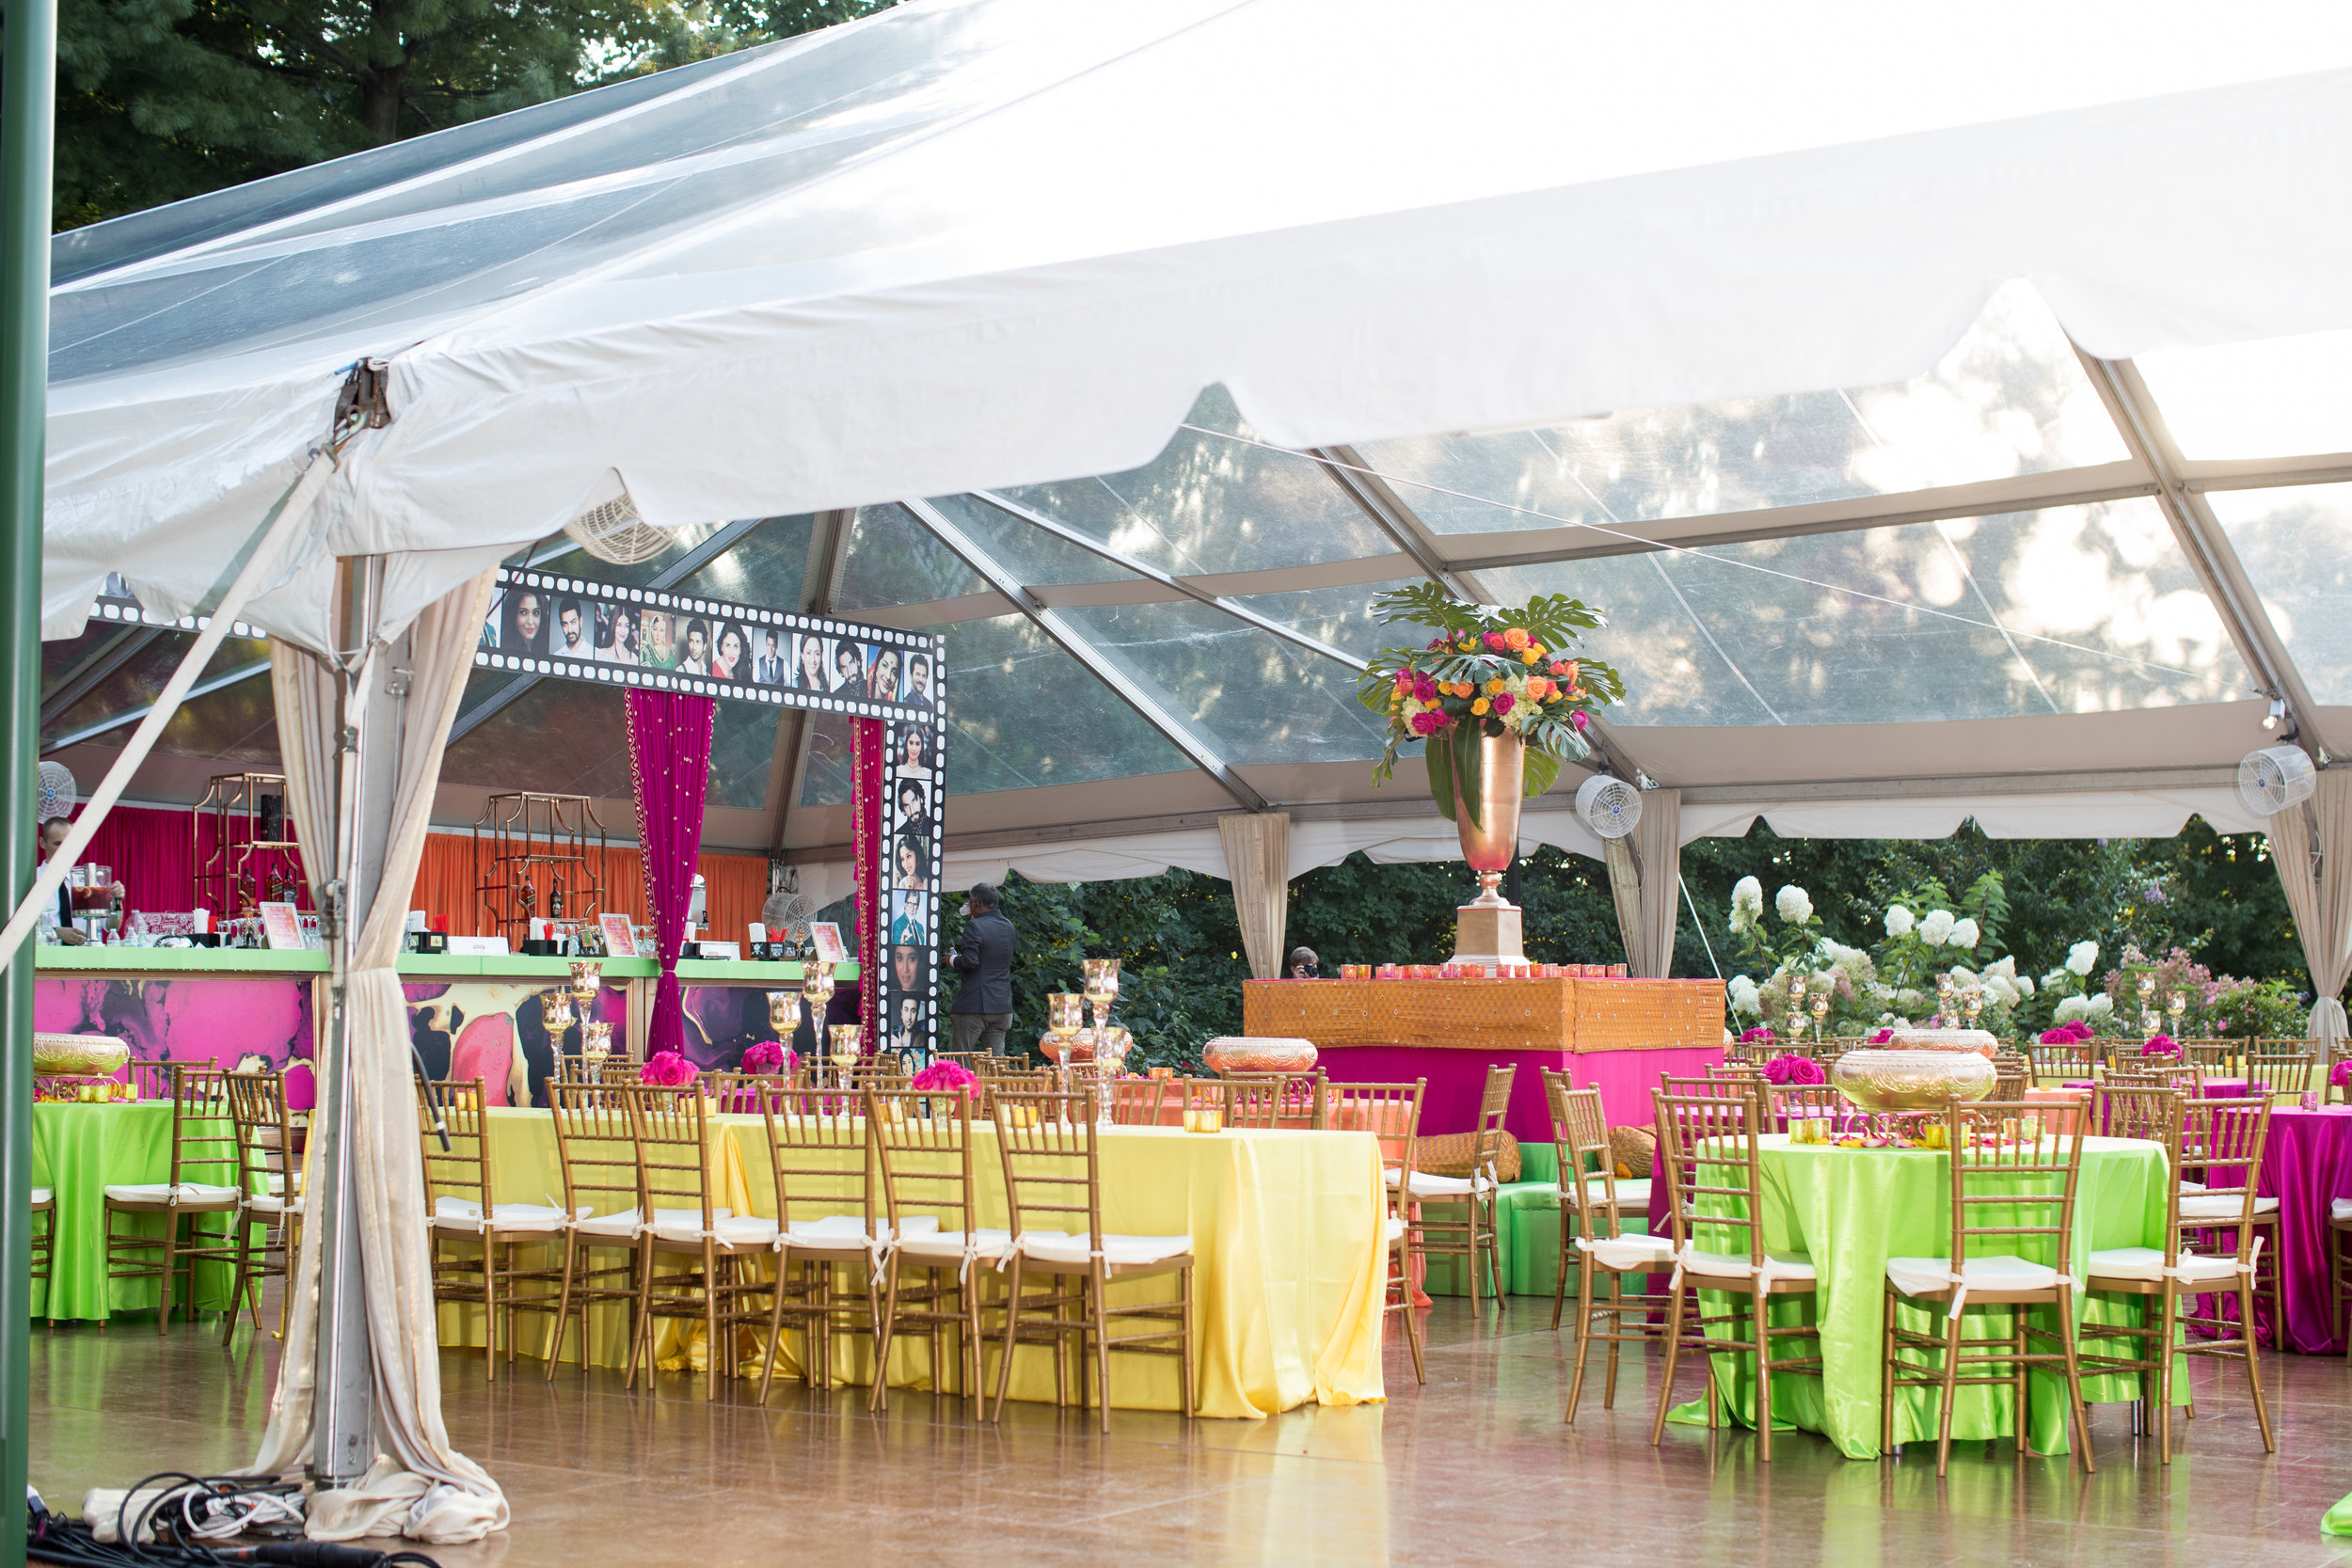 INDIAN WEDDING SANGEET DECOR CLEAR SPAN TENT.jpg (2).jpg